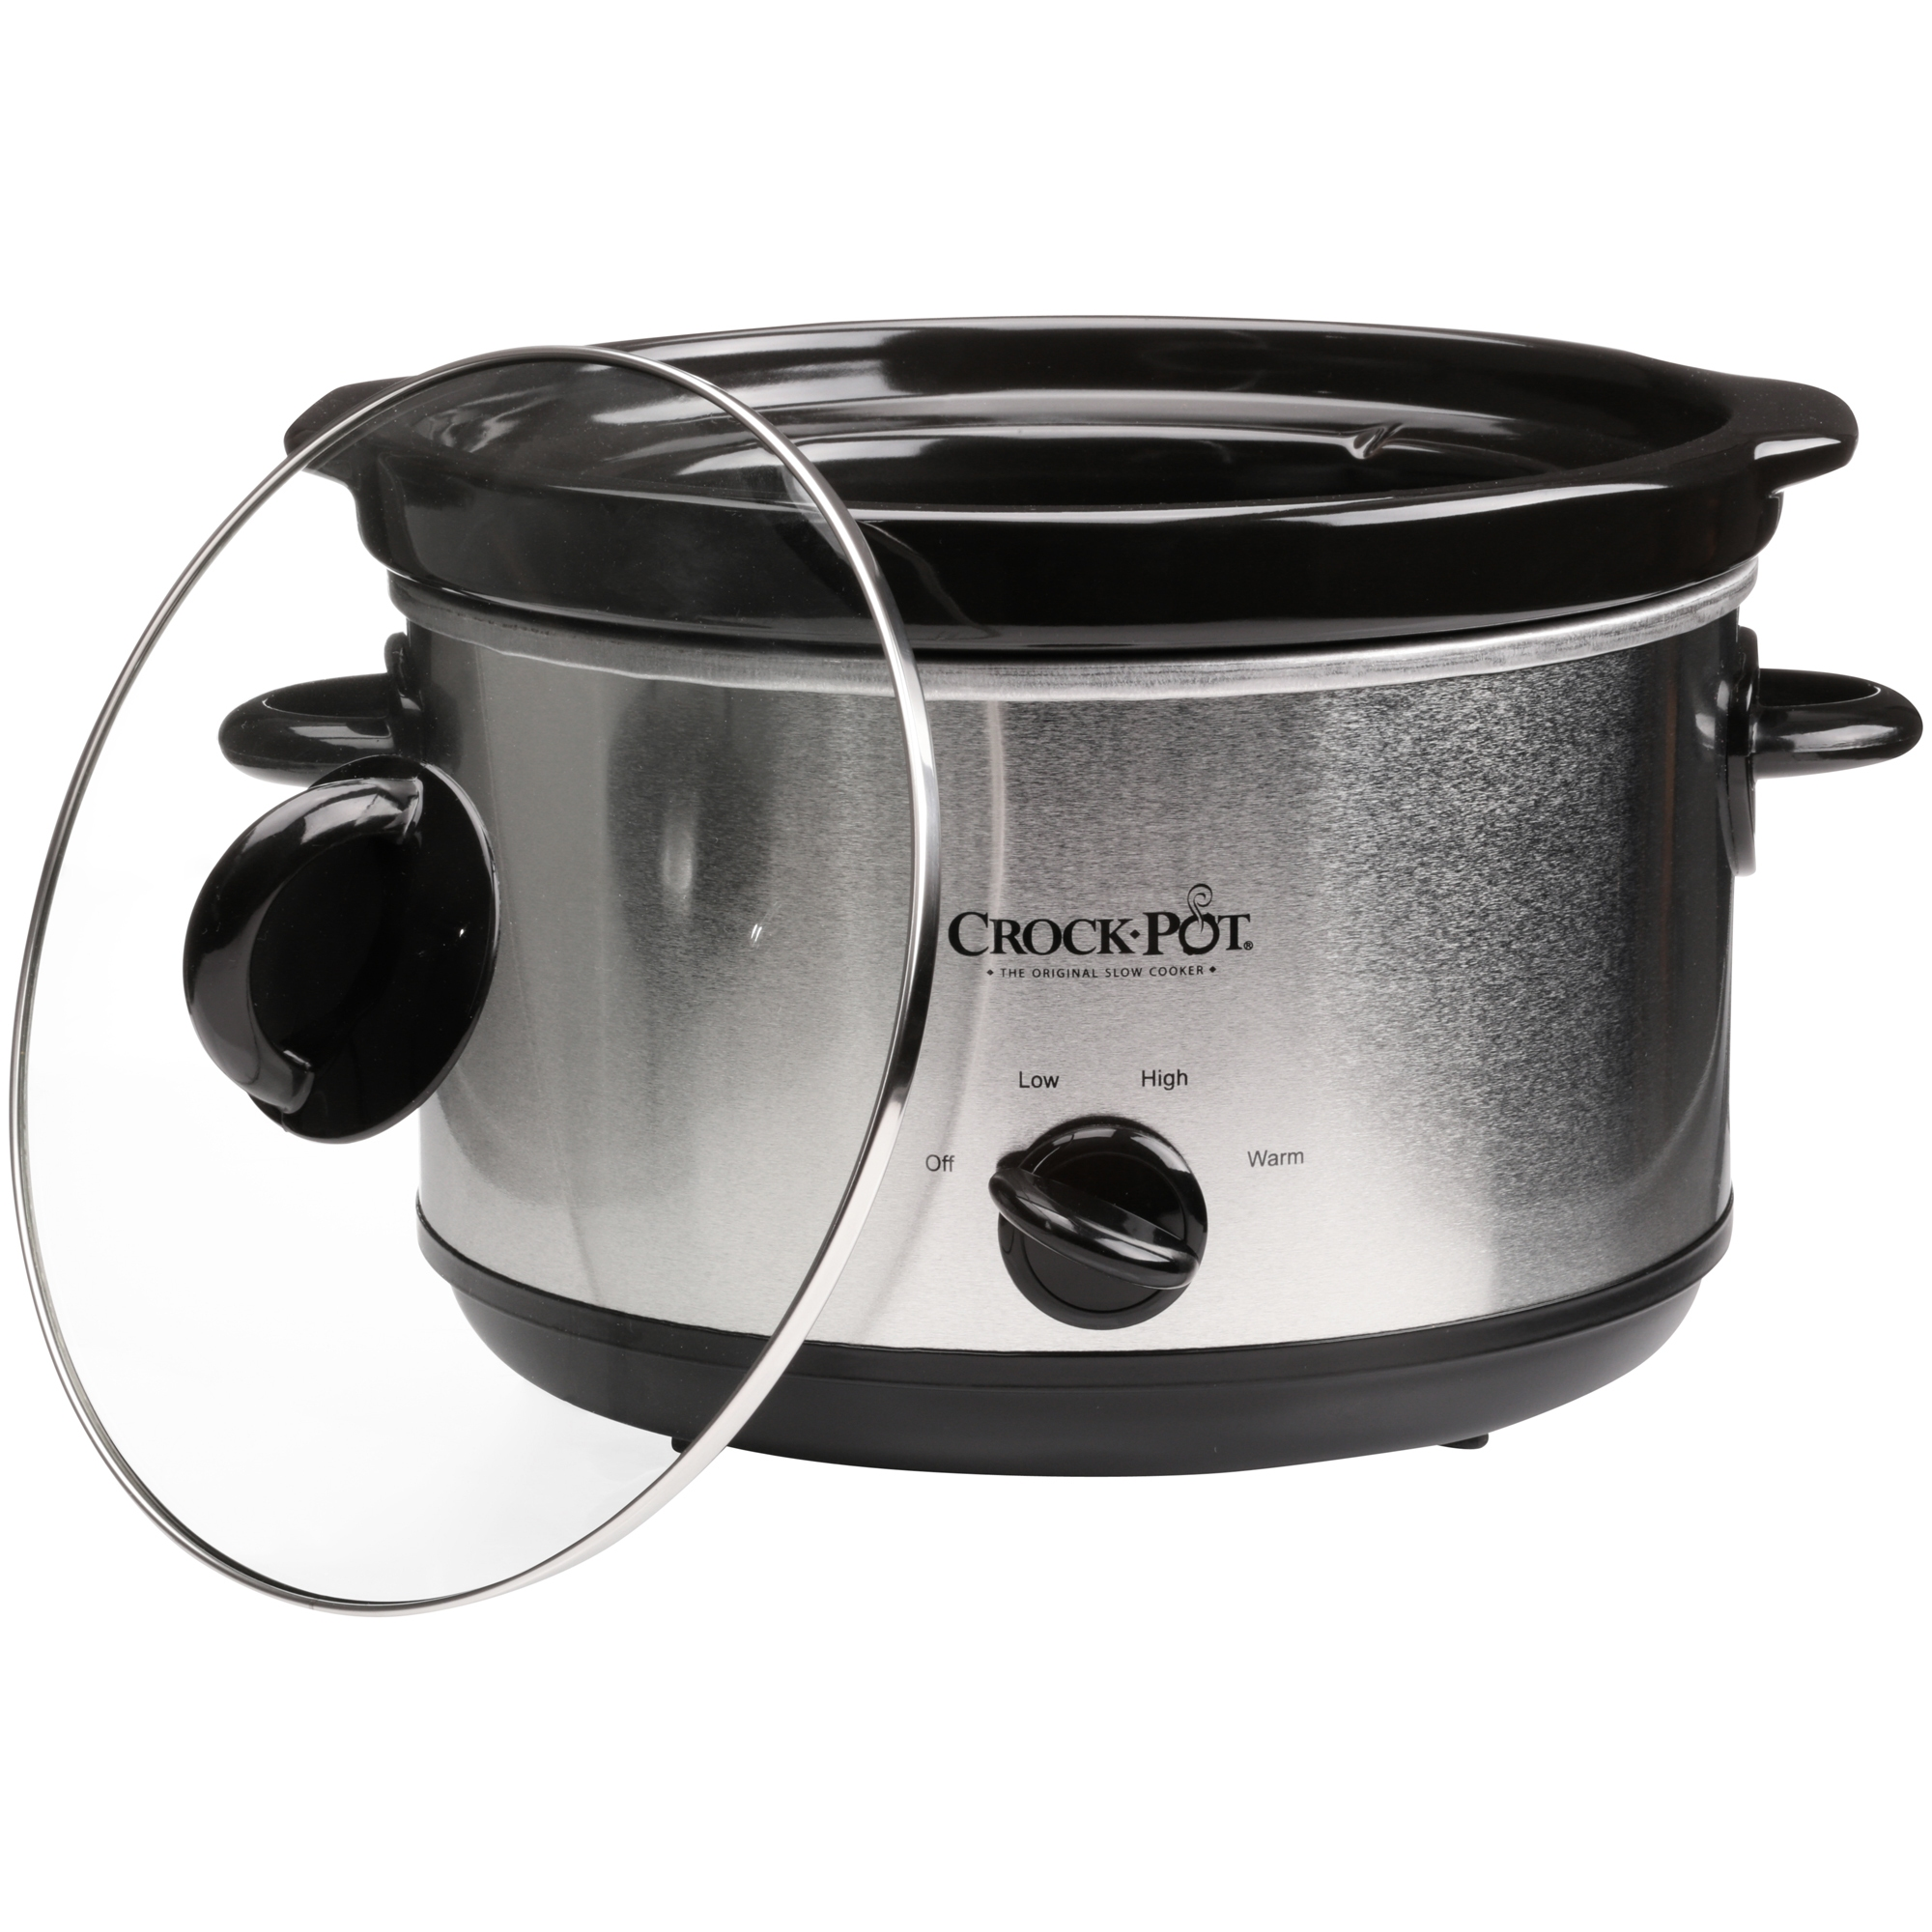 Crock Pot The Original Slow Cooker 5 Quart Stainless Steel Scr500